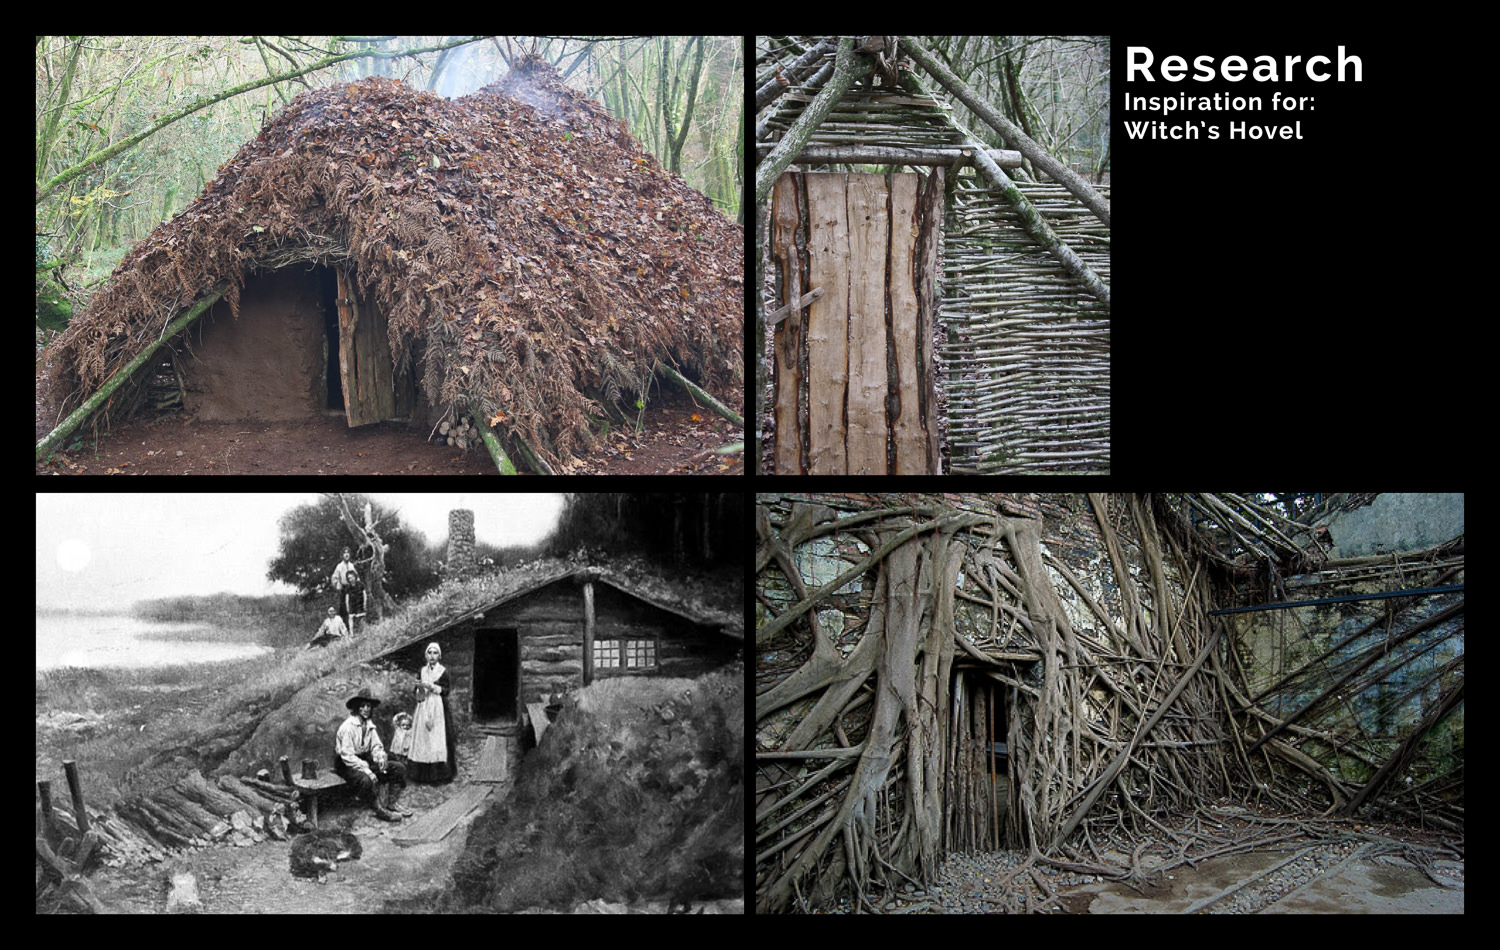 There are no records of an actual Witch's Hovel from this period or any other. The research gathered for the Witch's Hovel was some of the few bits of research not from the period and was used as inspiration. I wanted a small, simple structure that would feel like it was almost growing out of the forest floor.